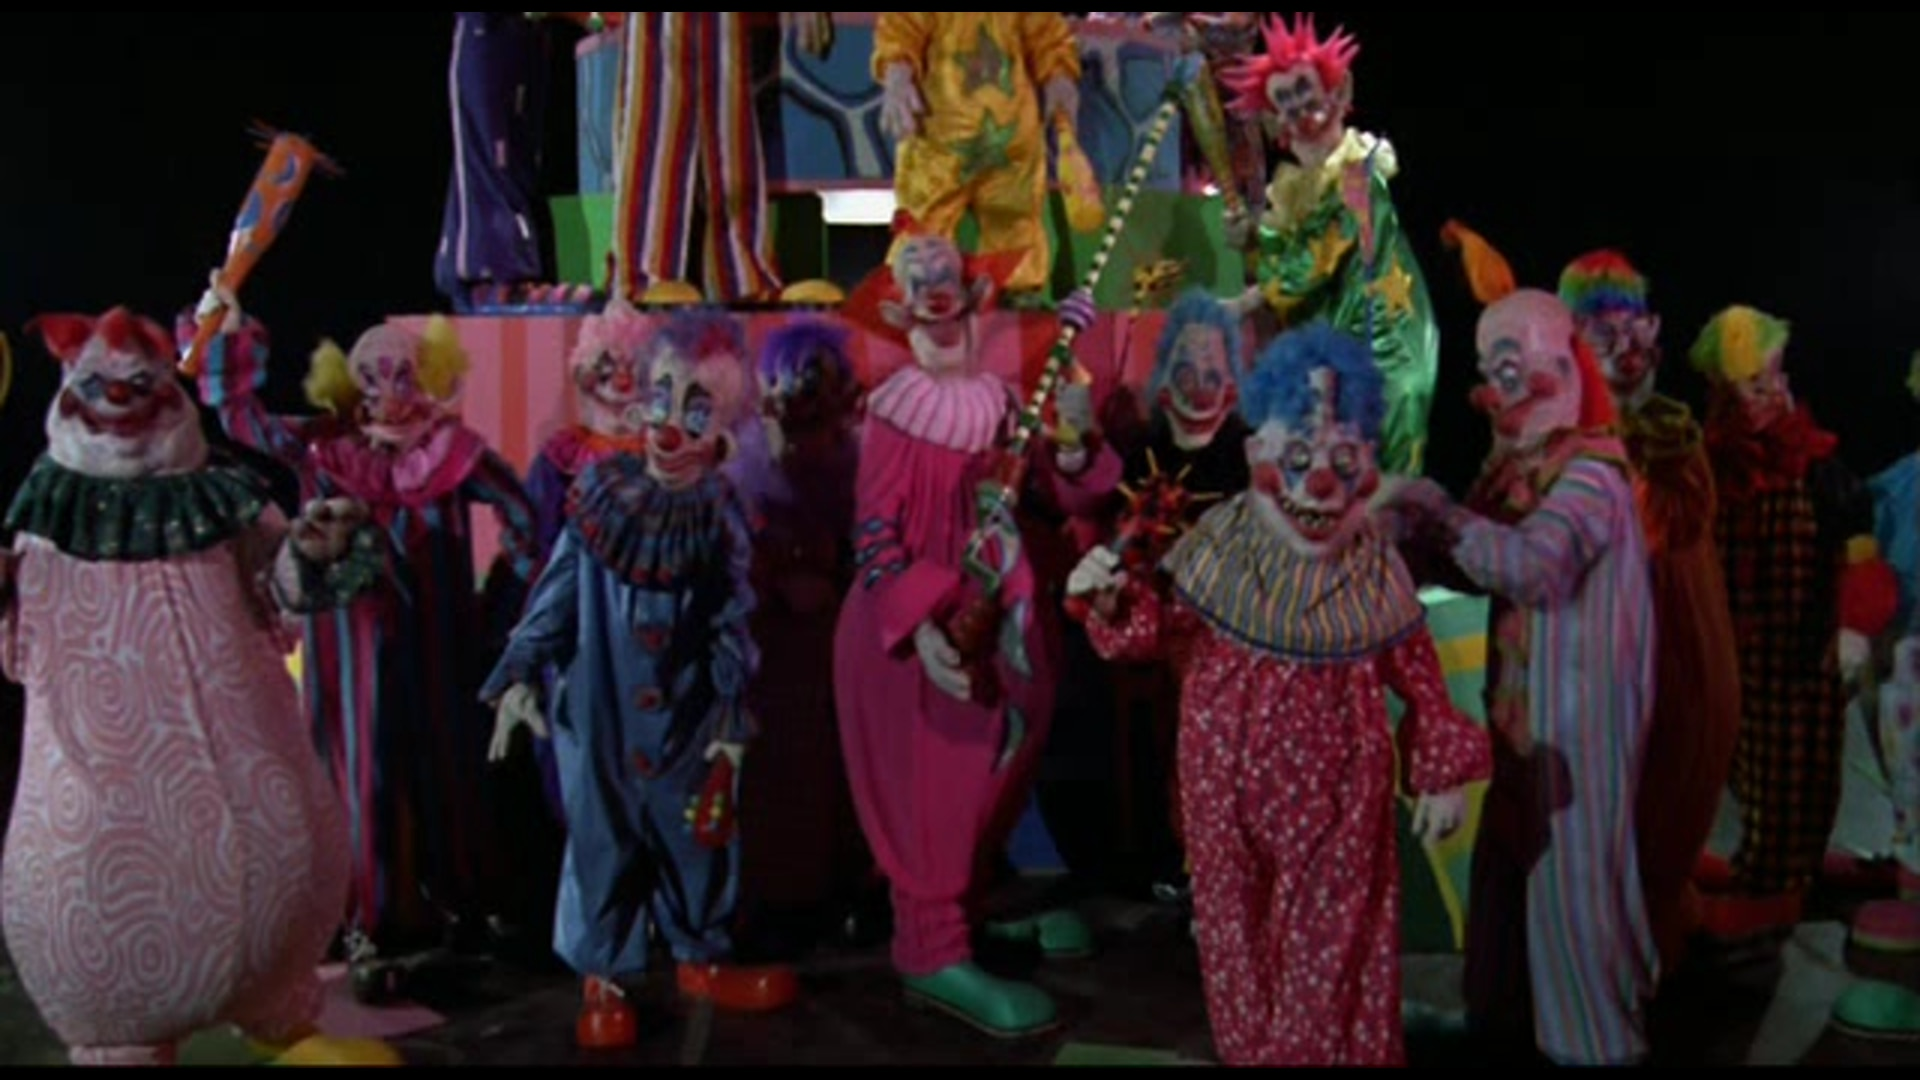 Killer klowns from outer space score being rerecorded with for Killer klowns 2